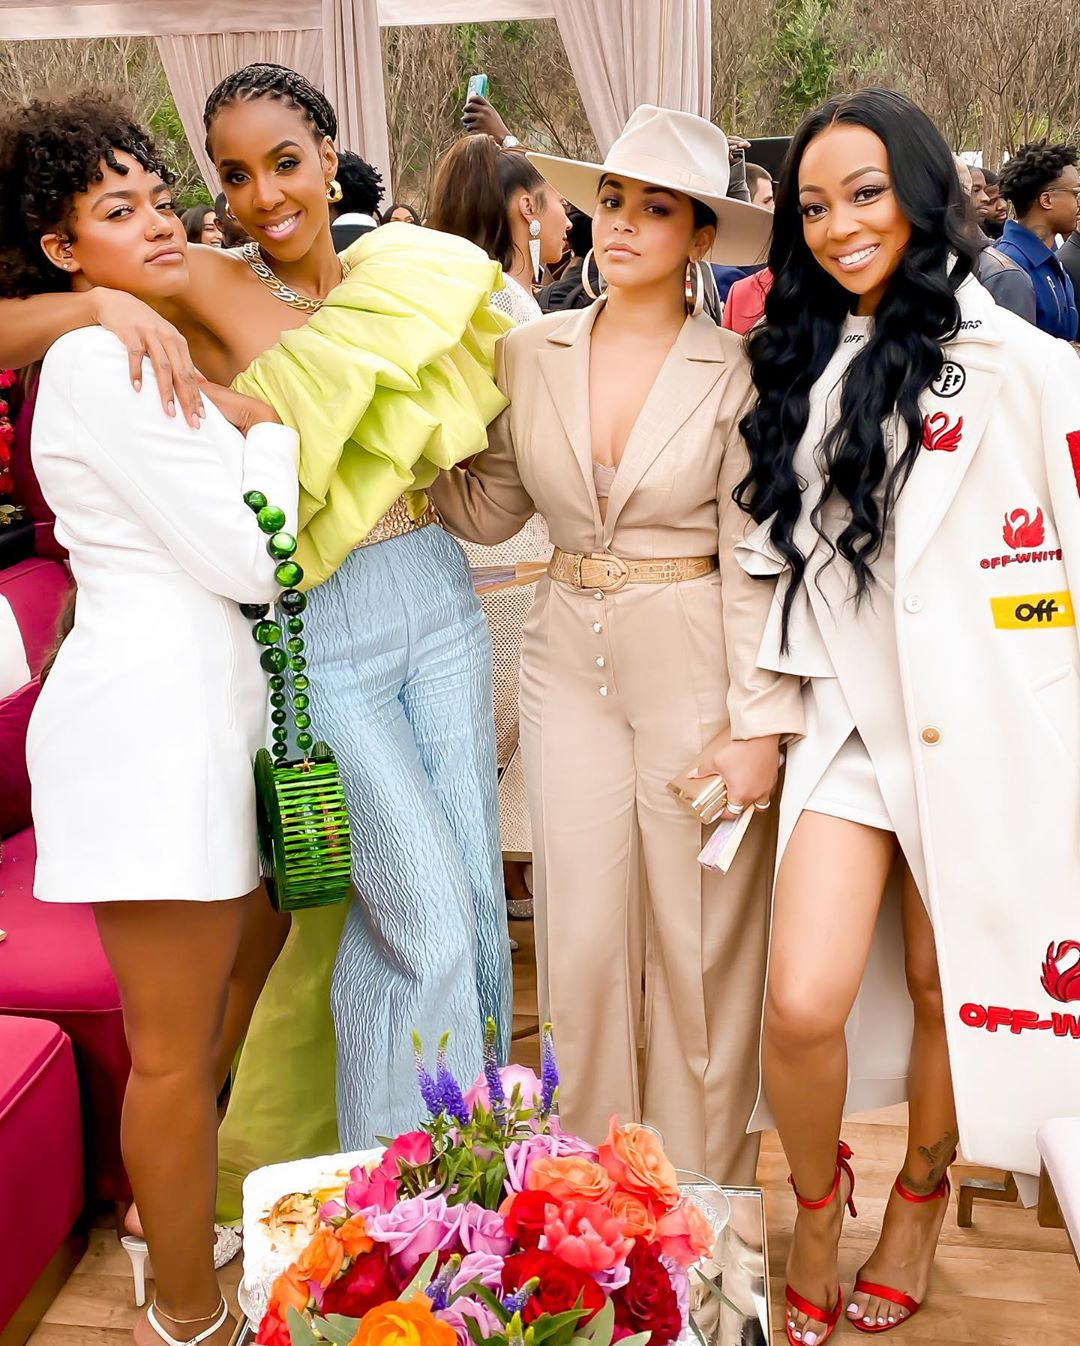 Roc Nation Holds An Exclusive Star-Studded Brunch Event